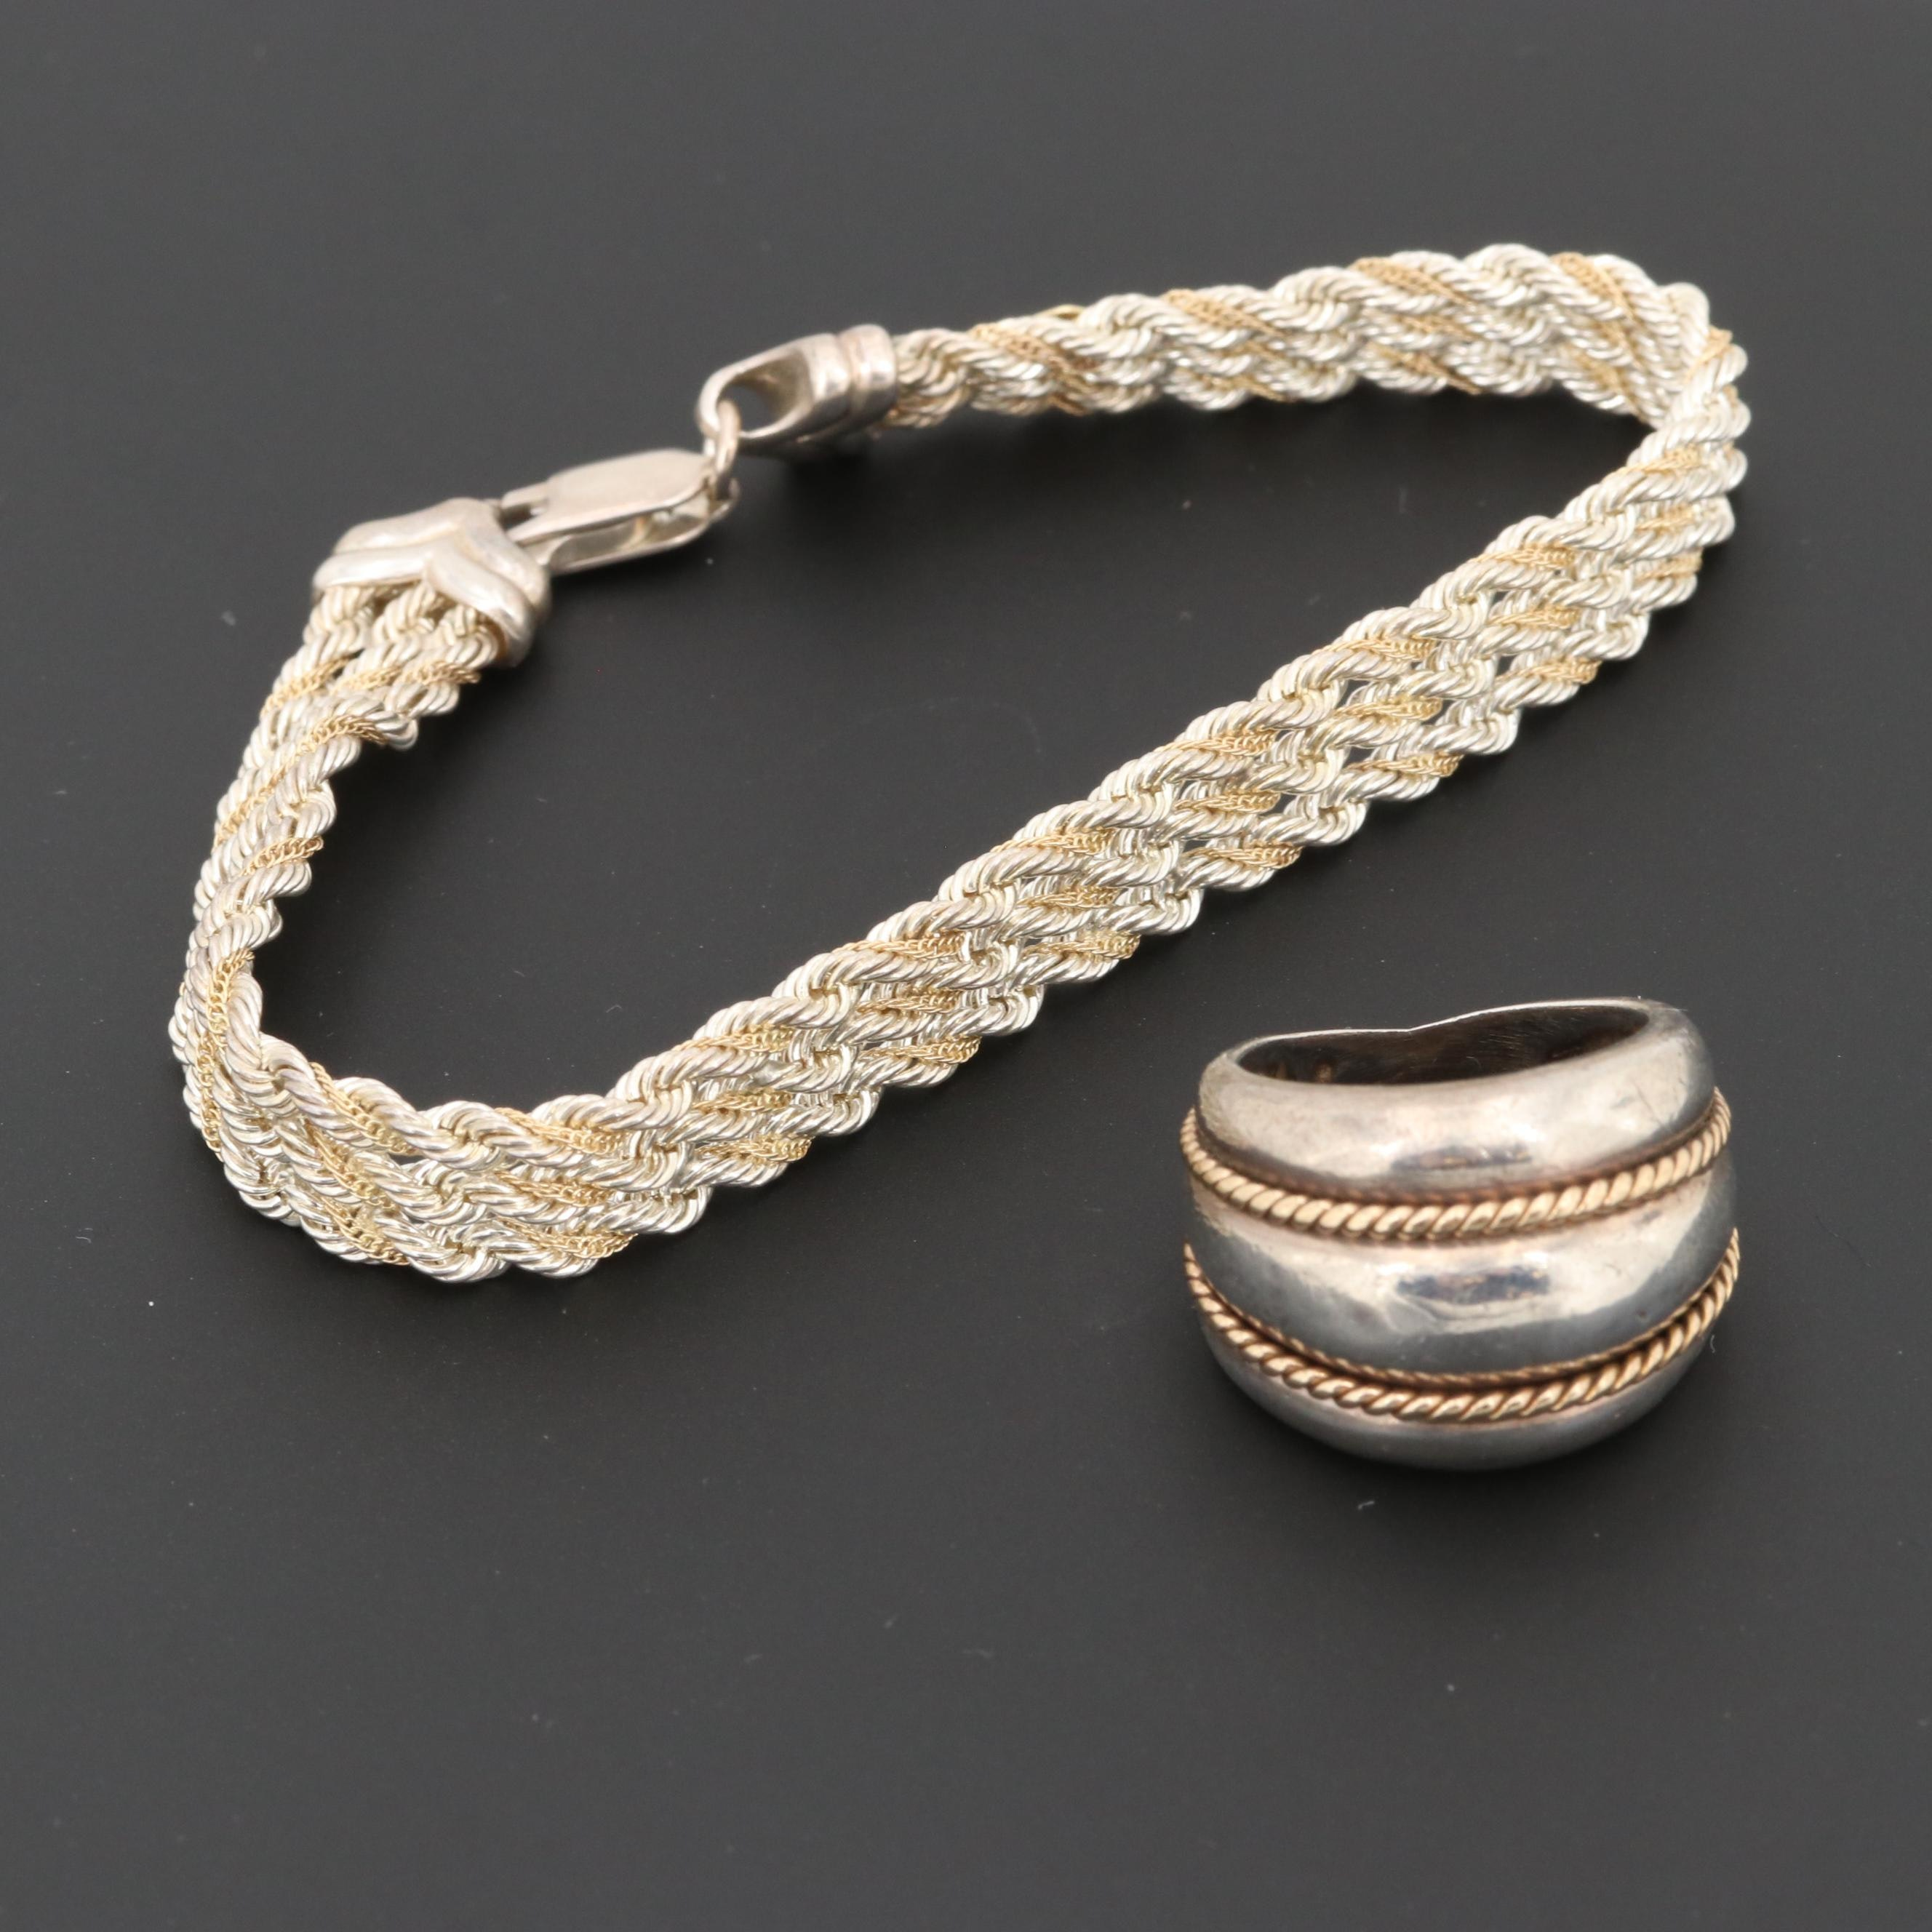 Sterling Silver Bracelet and Ring with 14K Yellow Gold Accents